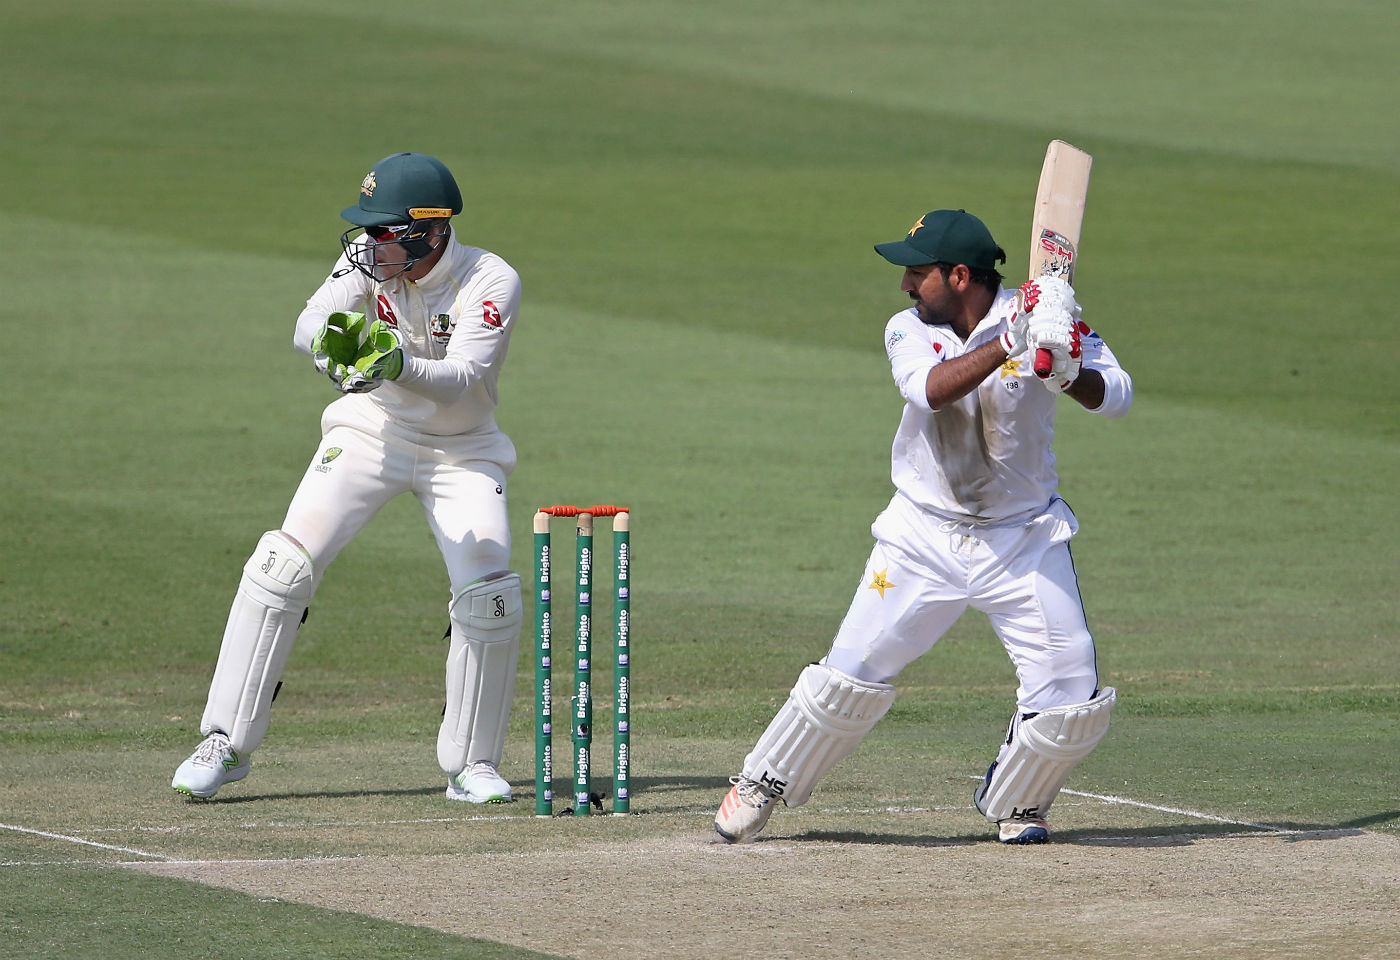 Pakistan look to make early breakthroughs on Day 2 against Australia